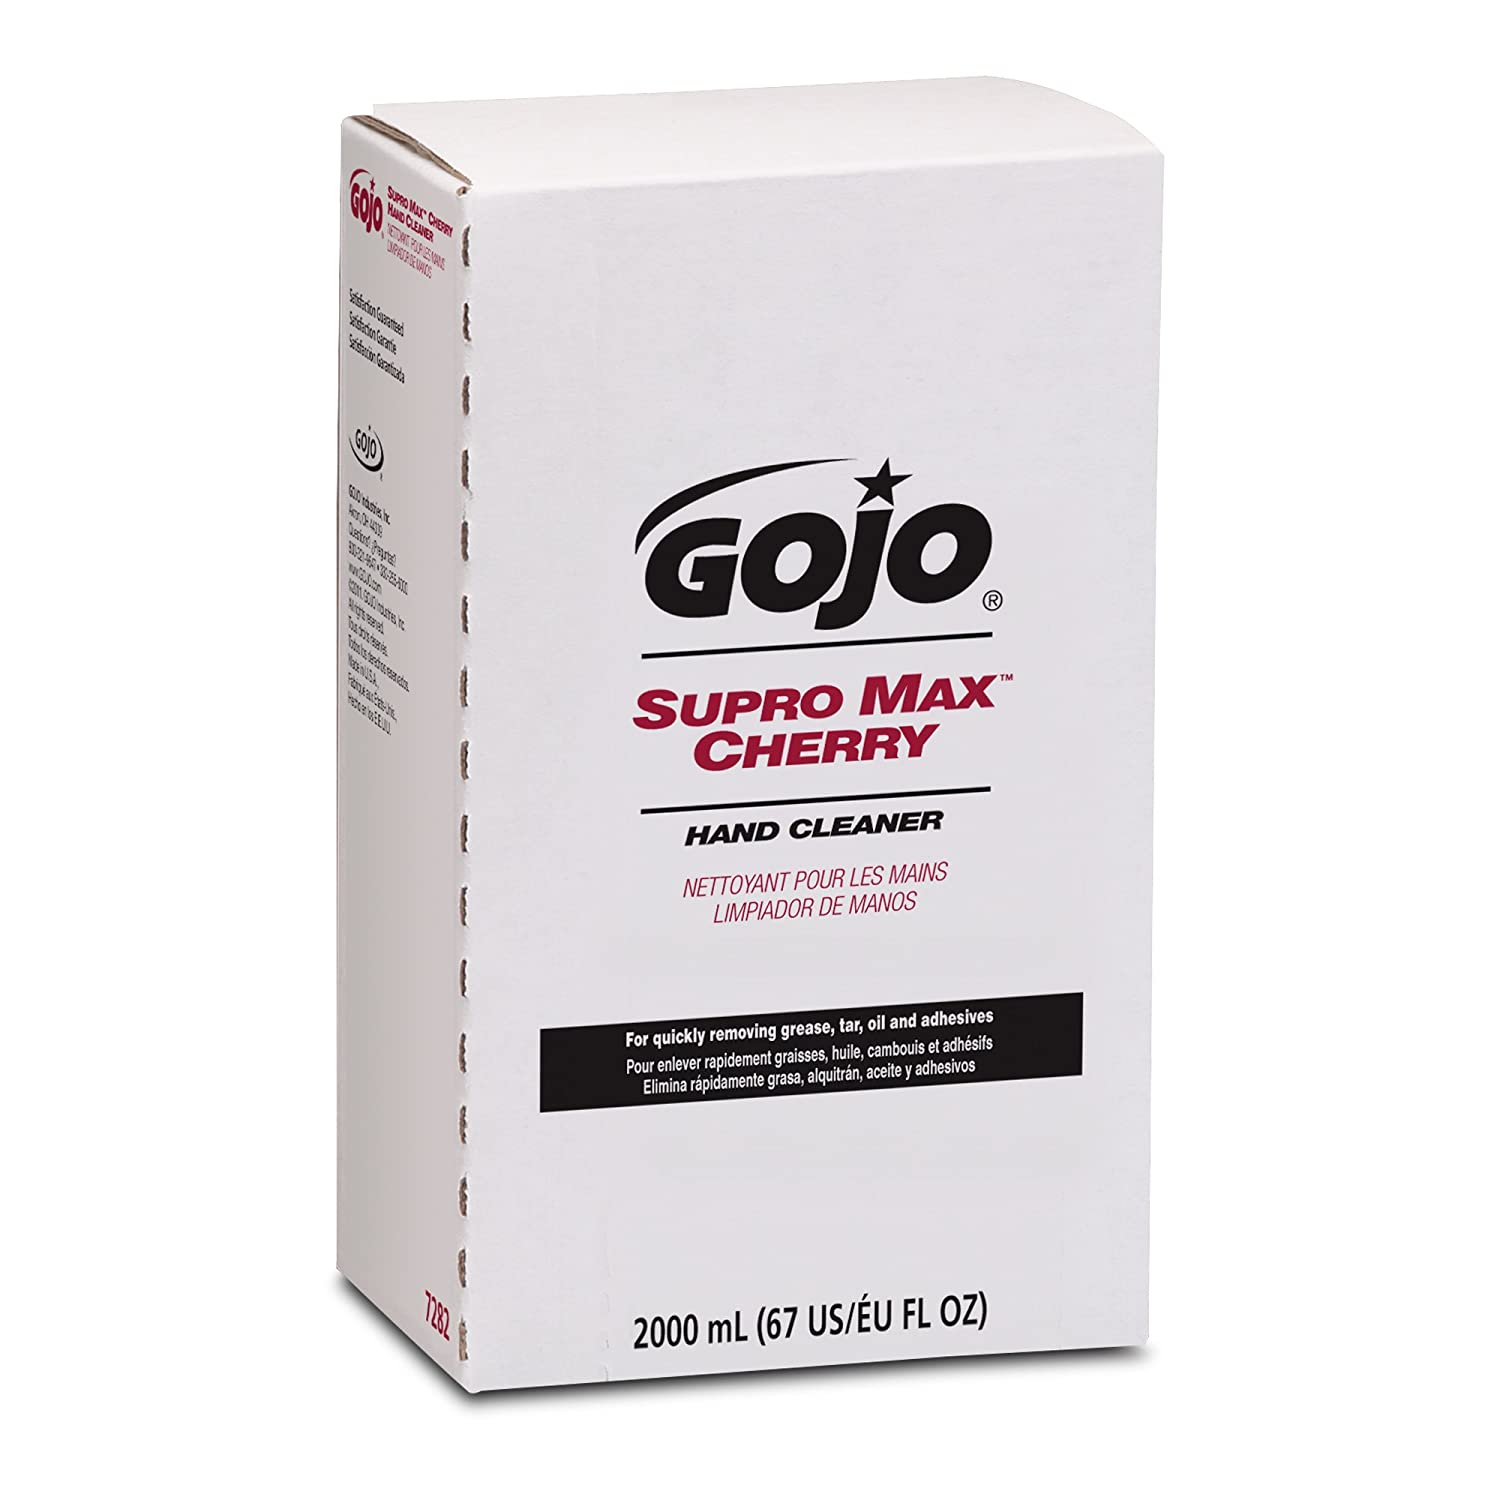 janitorial supplies amazon com gojo 7282 04 2000 ml supro max cherry hand cleaner pro tdx 2000 refill